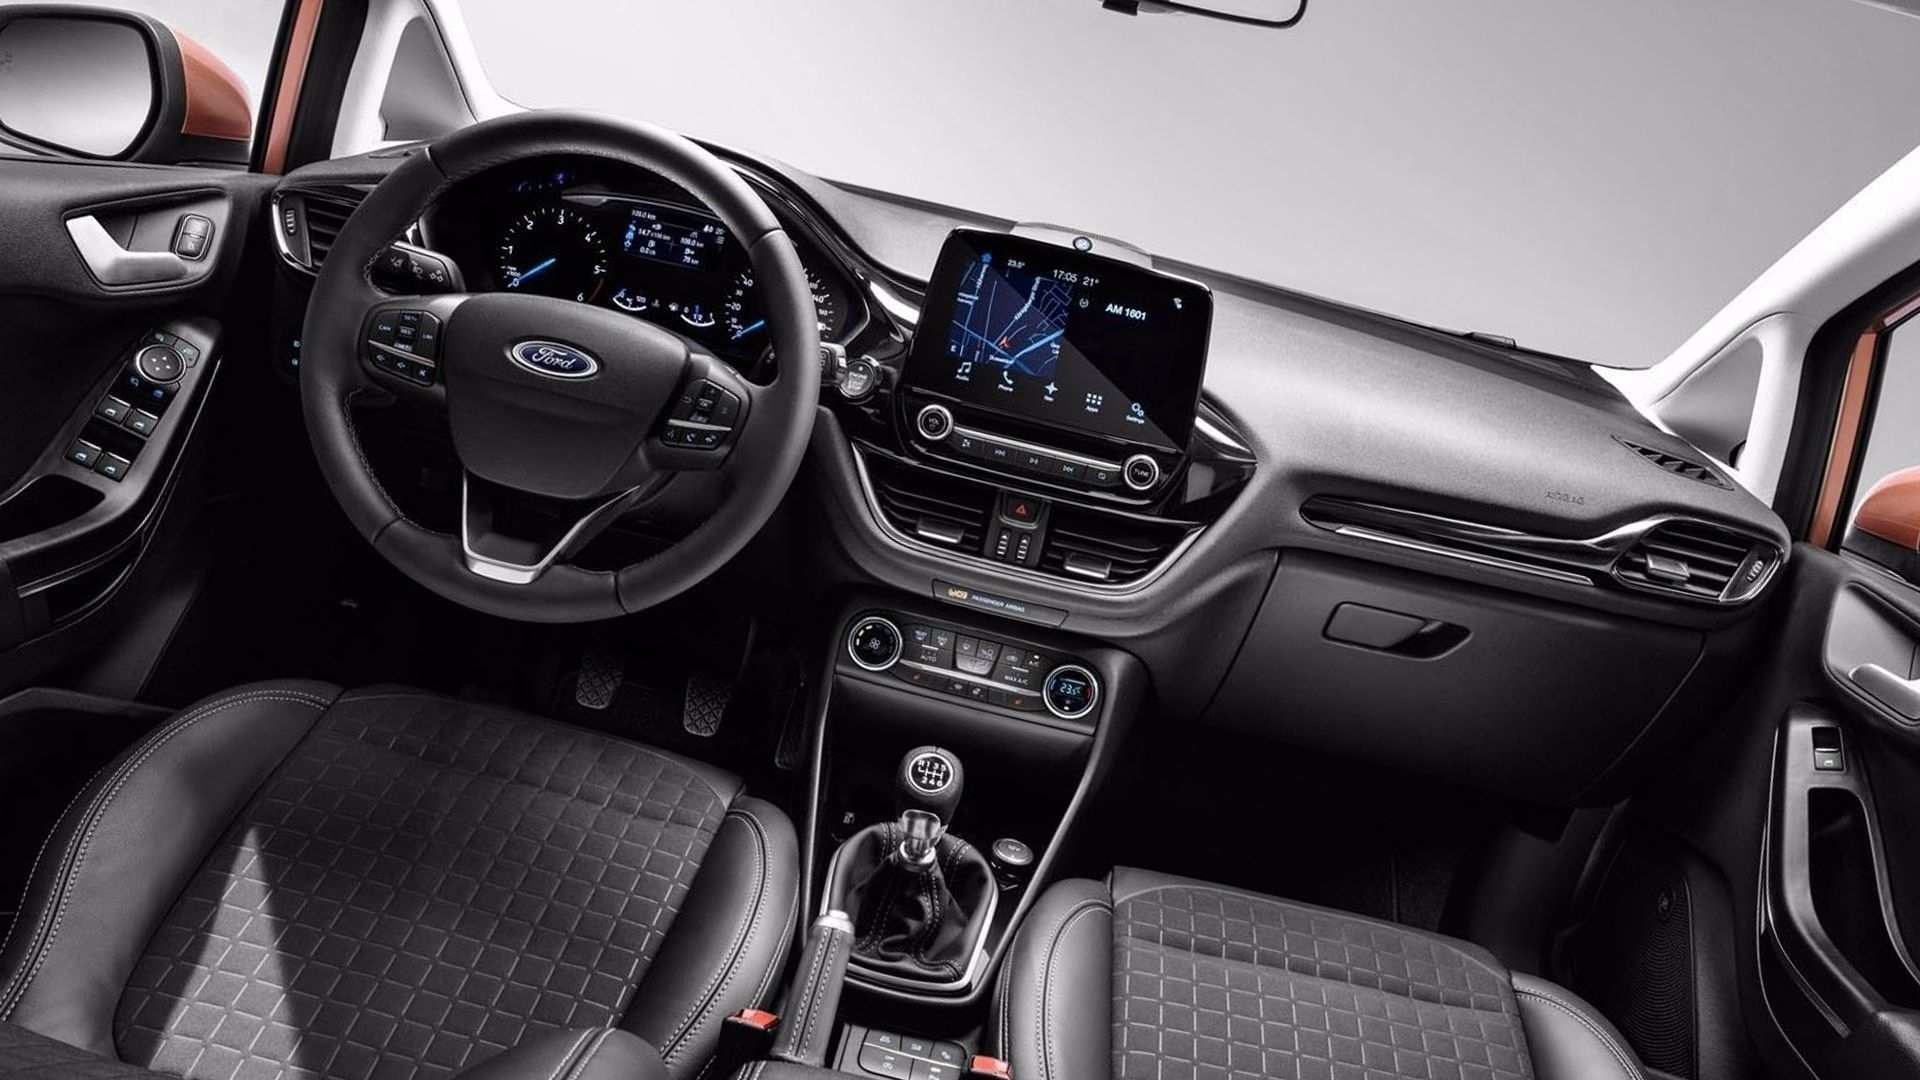 66 Great Ford 2019 Interior Picture Release Date And Review New Review by Ford 2019 Interior Picture Release Date And Review